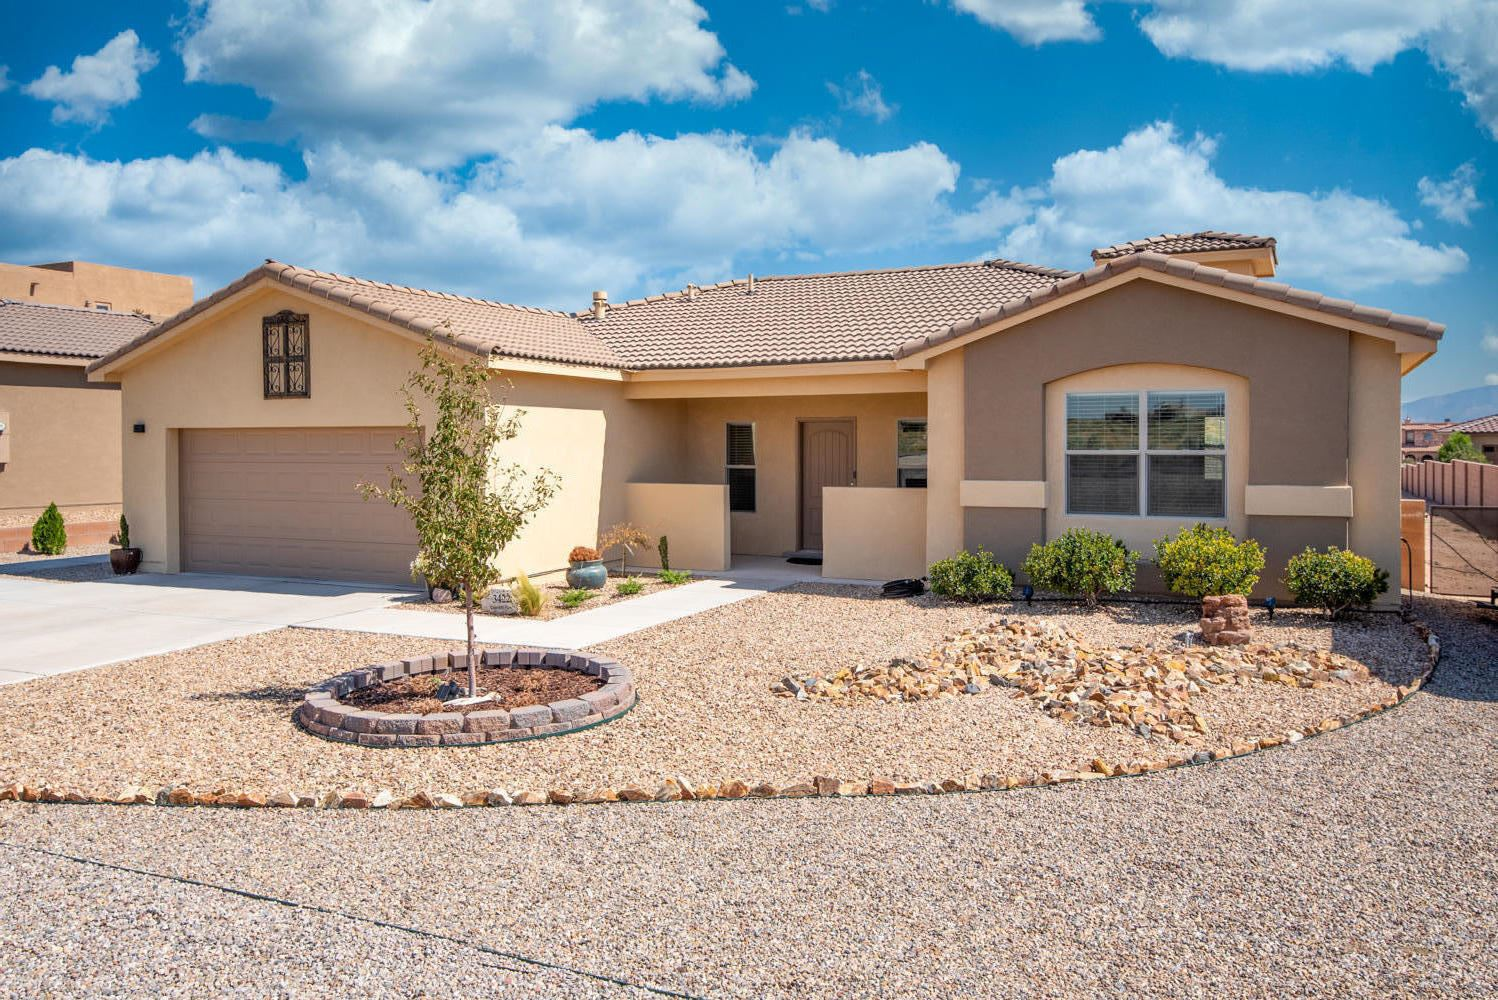 Photo of 3422 Chayote Road NE, Rio Rancho, NM 87144 (MLS # 977887)